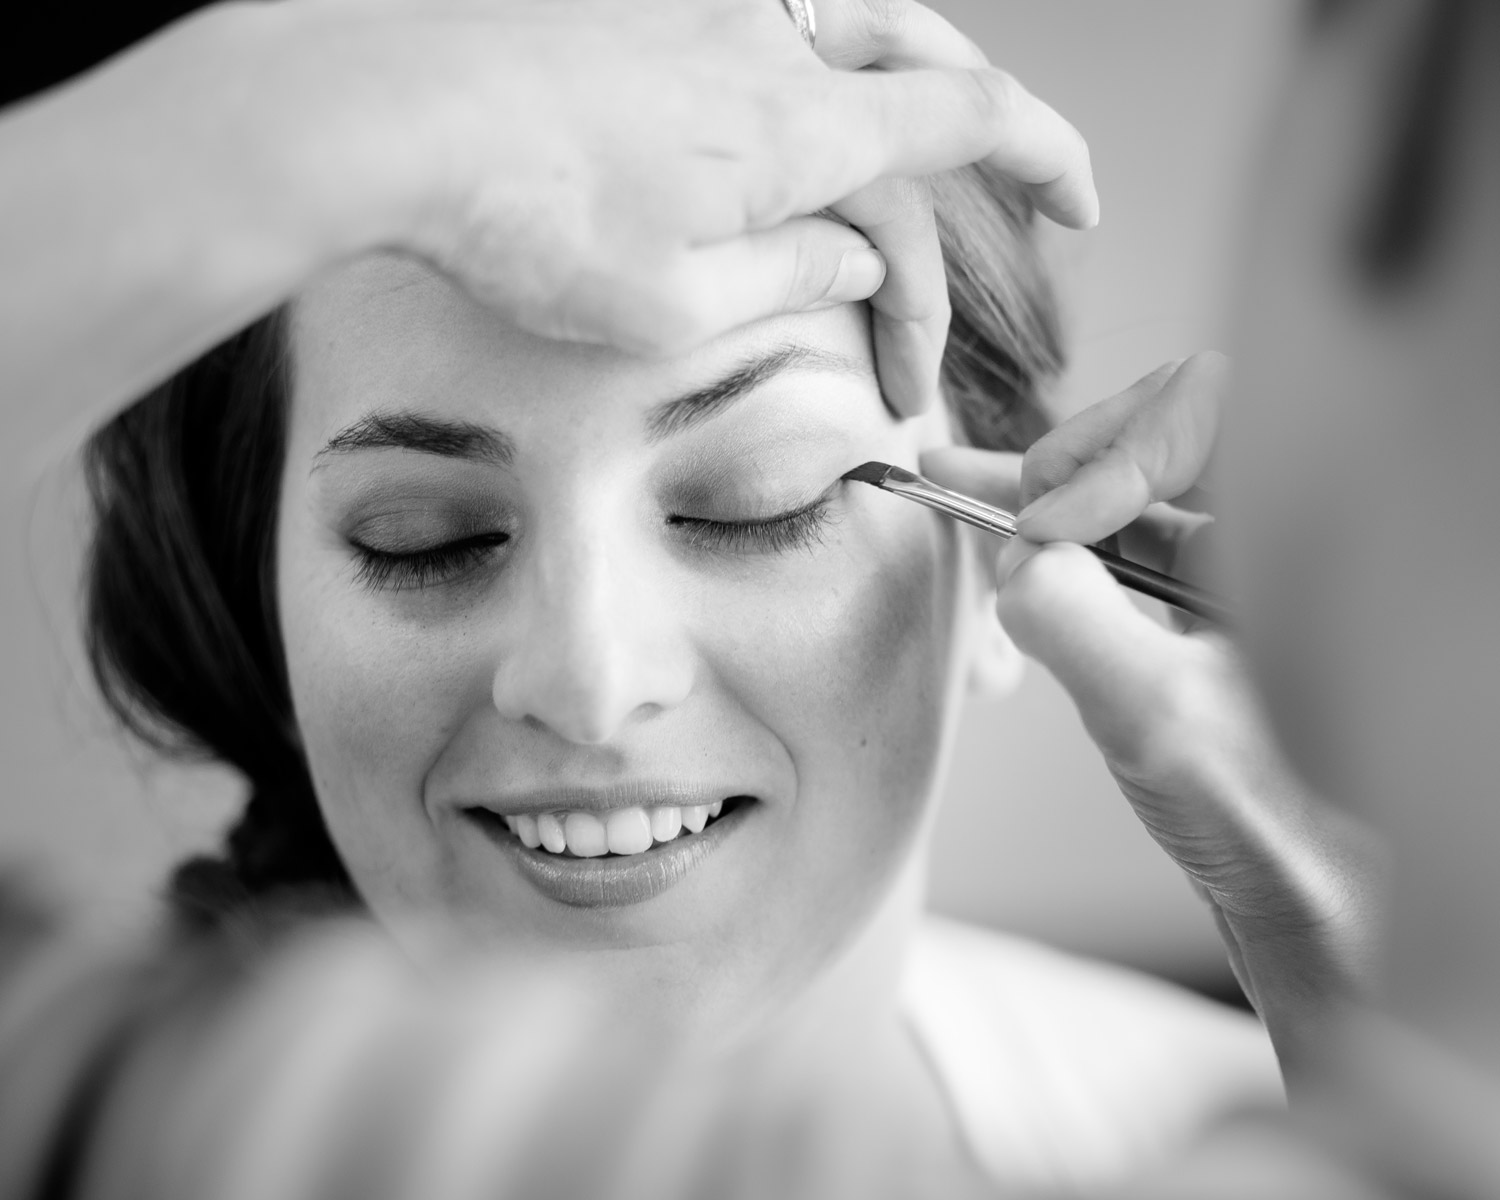 A bride getting eye making applied before her wedding by Vermont photographer Stina Booth